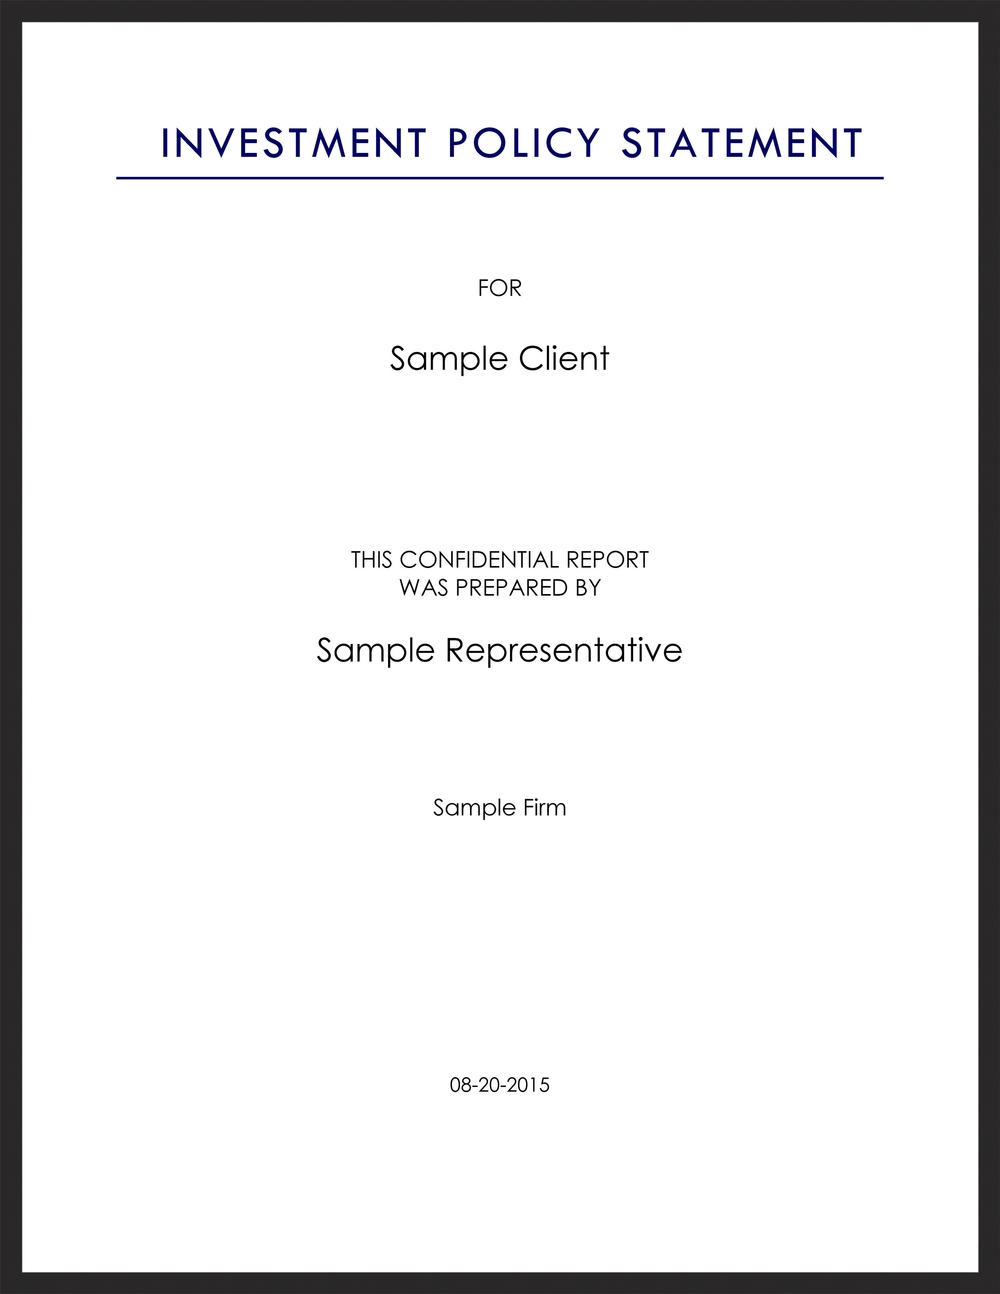 Sample Investment Policy Statement Cover.jpg